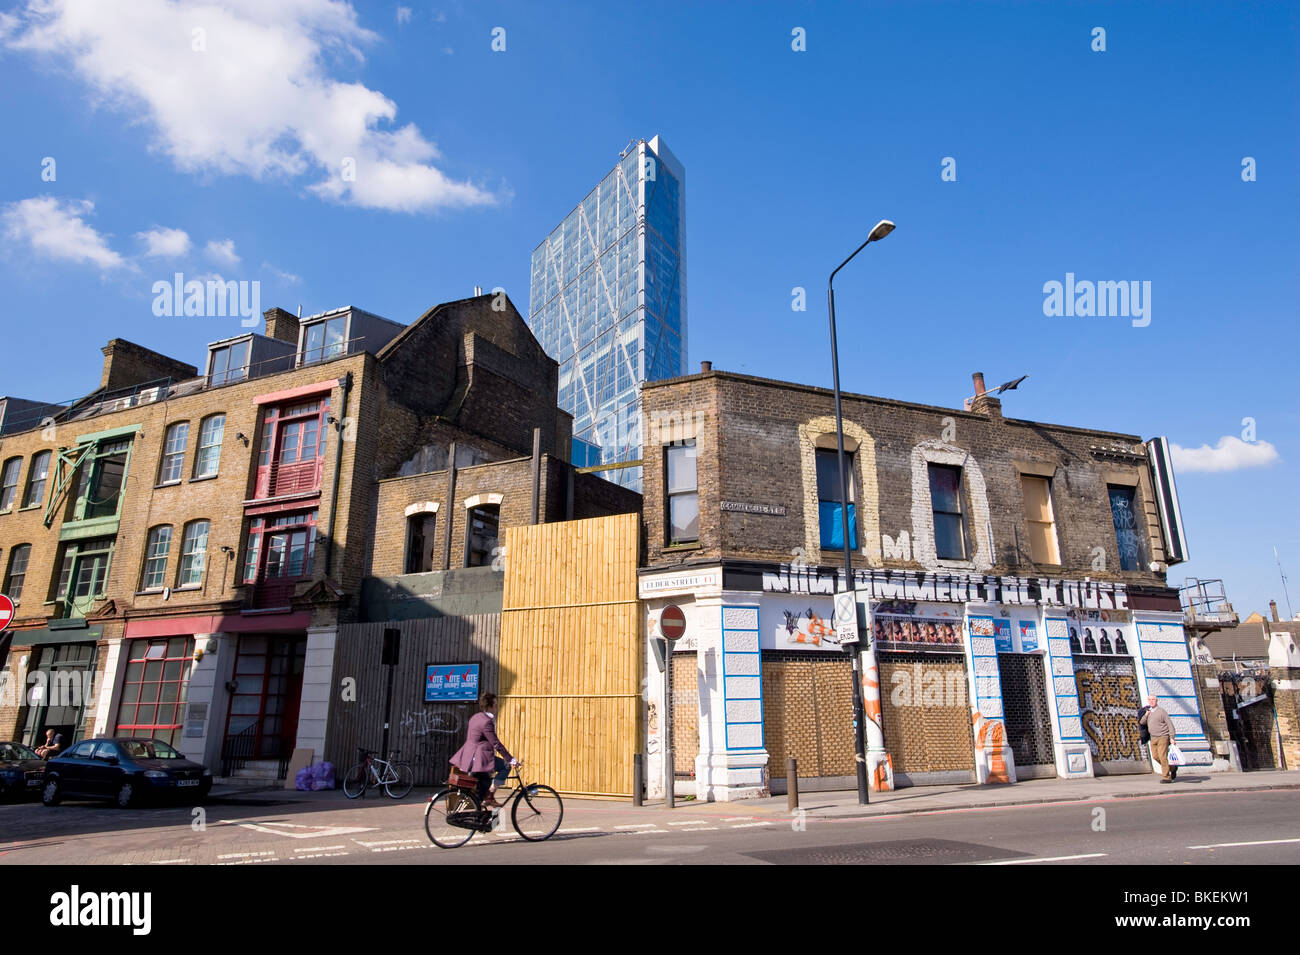 Old and new architecture on Commercial Street in East London, London, United Kingdom - Stock Image